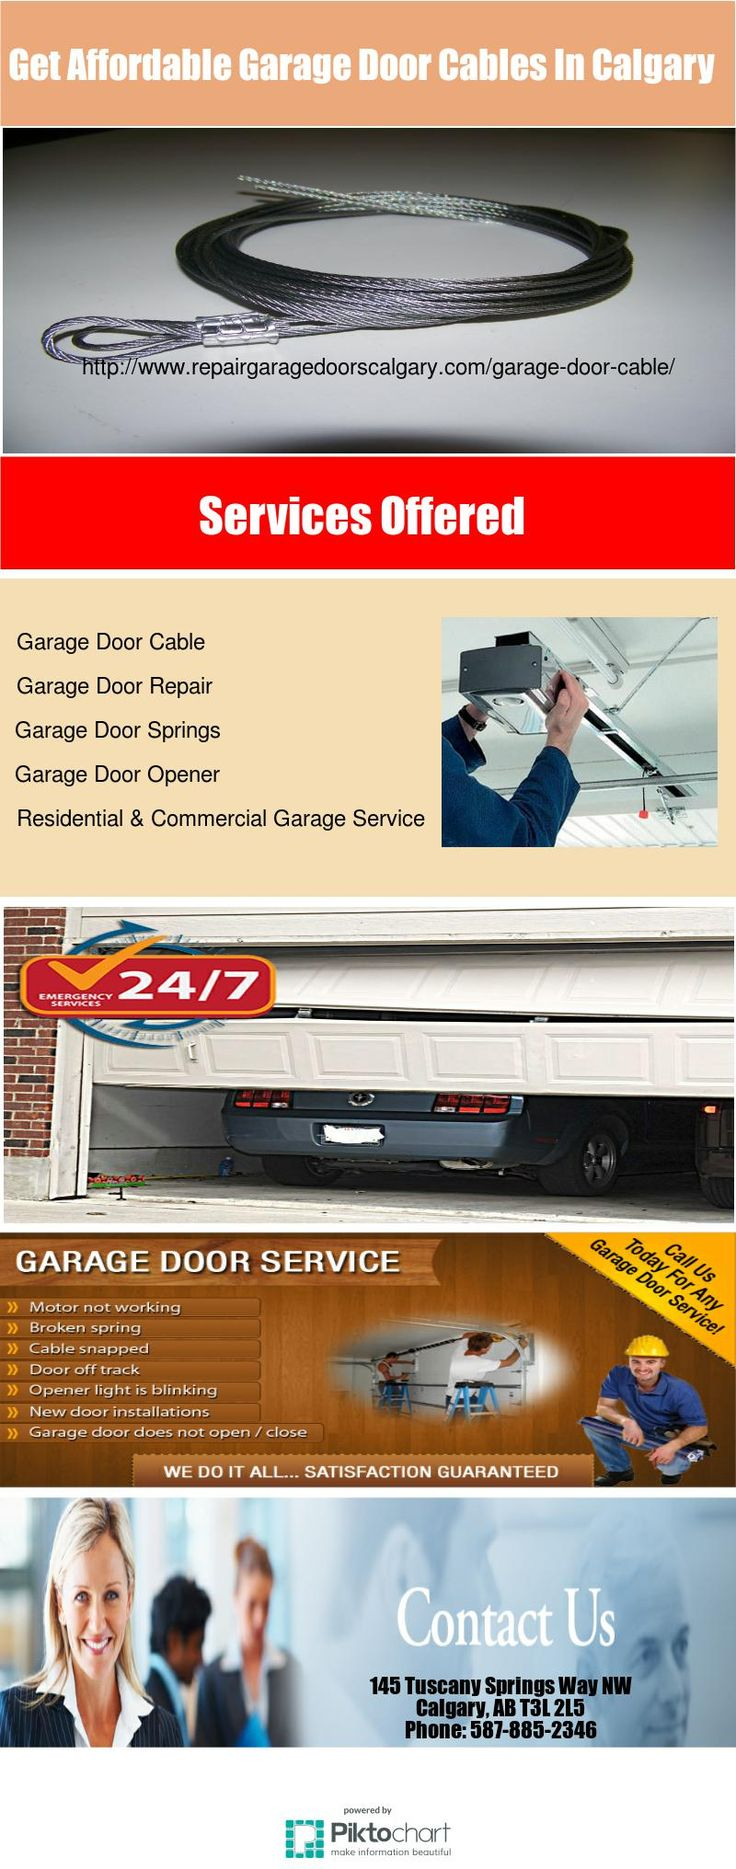 Repair Garage Doors Calgary offers tensile garage door cable for the smooth  operation of your garageBest 25  Garage door cable ideas on Pinterest   Garage doors parts  . Exterior Door Parts Calgary. Home Design Ideas